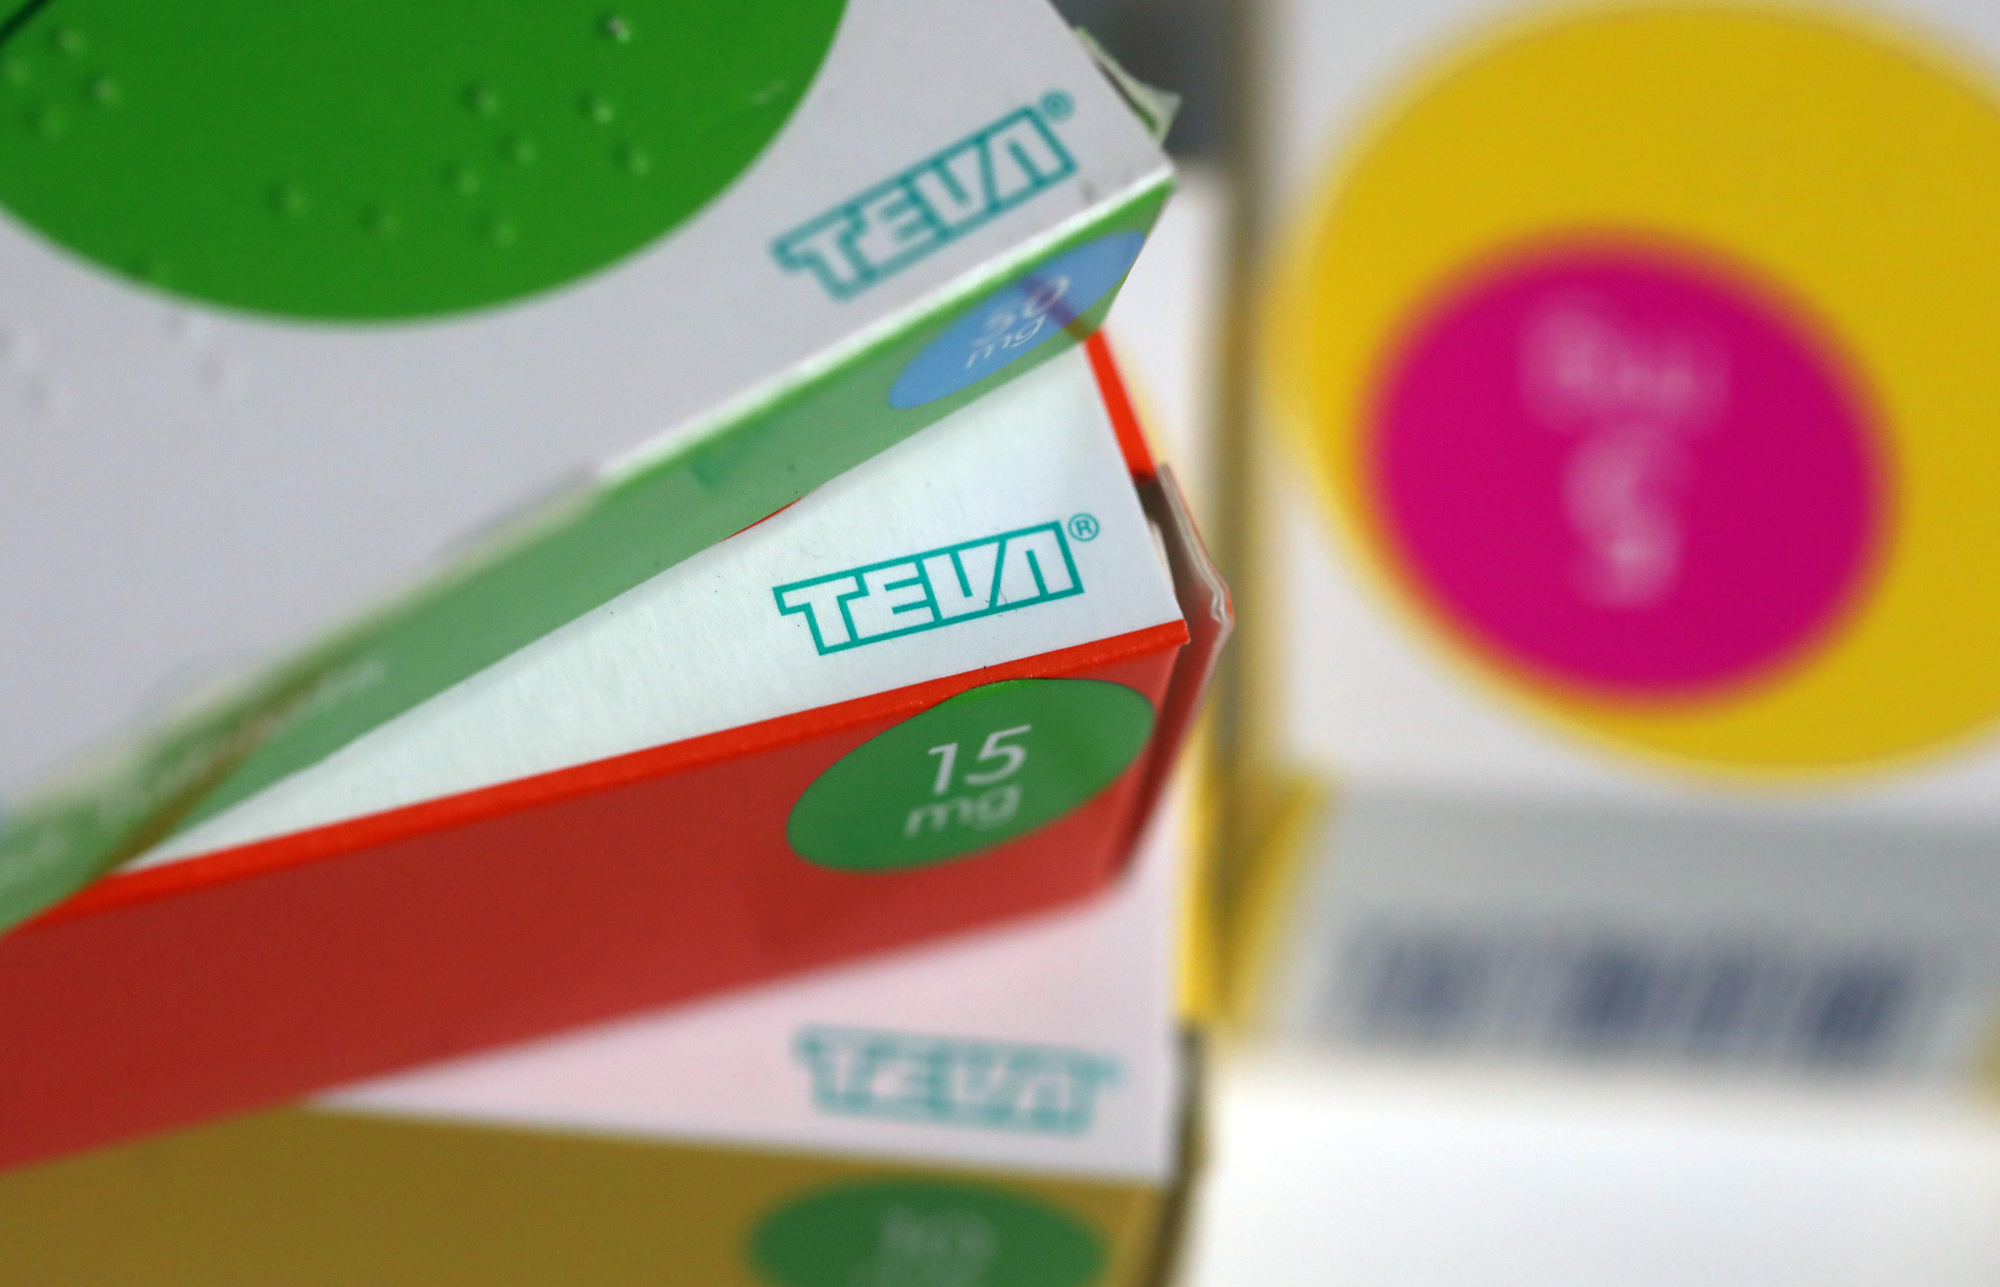 Teva charged in US price-fixing investigation